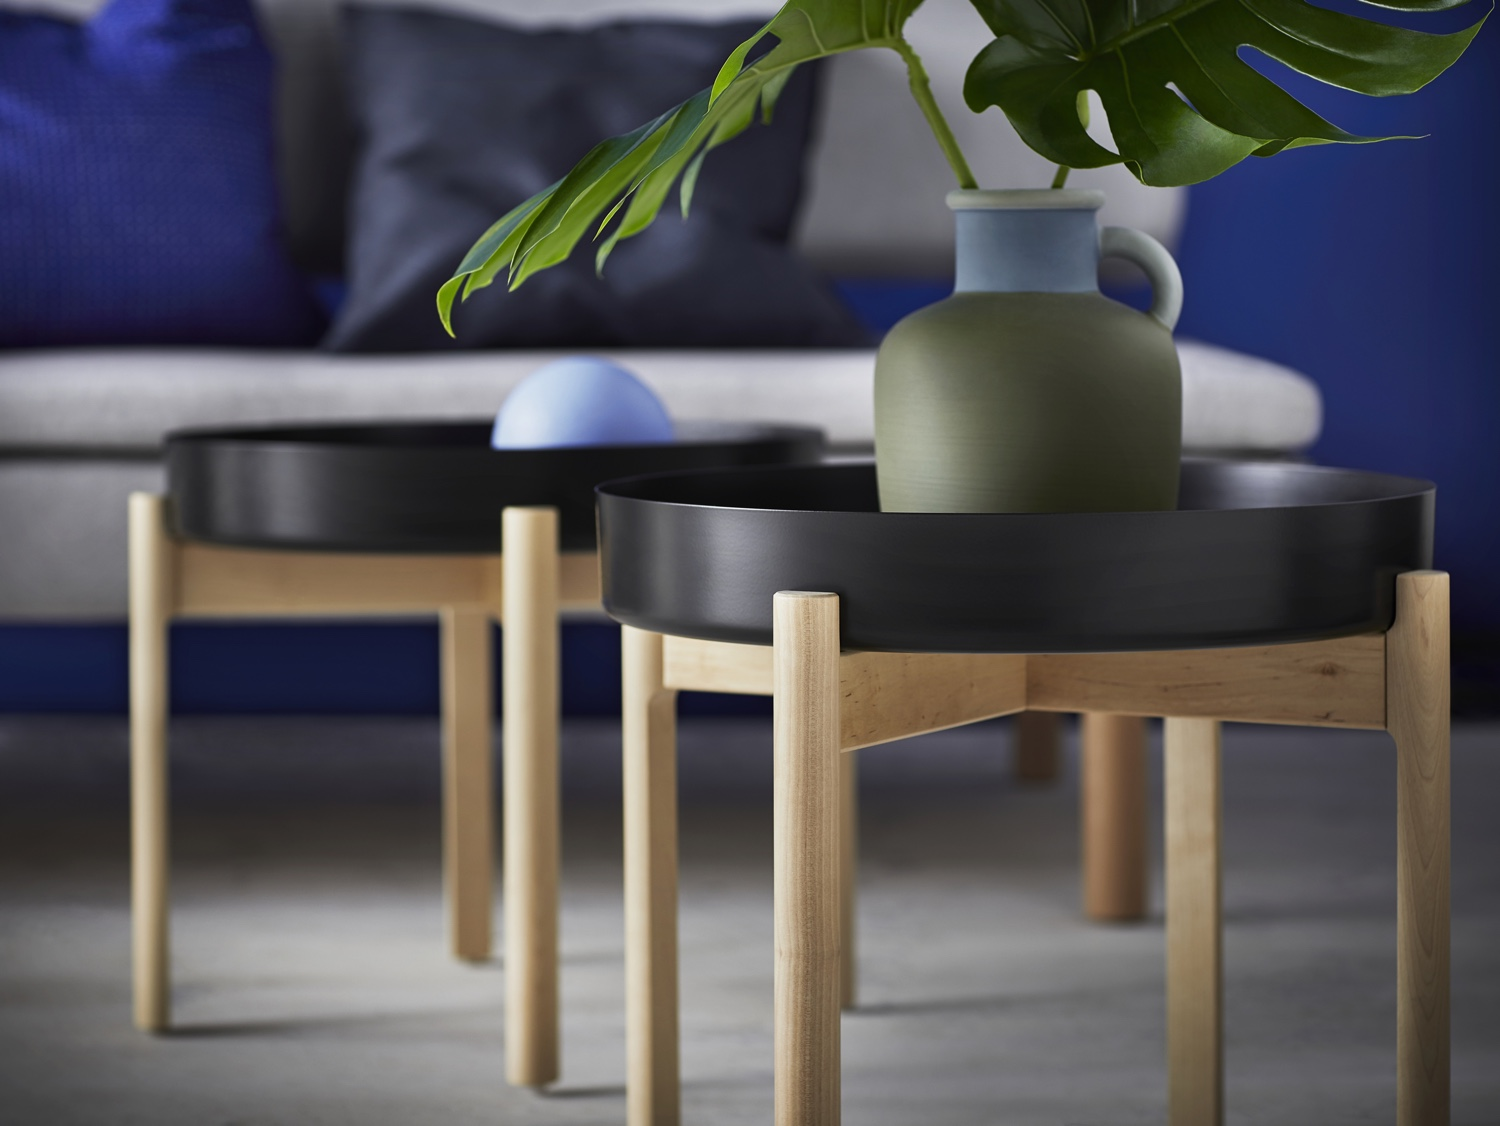 10 Standouts From The IKEA X HAY YPPERLIG Collection